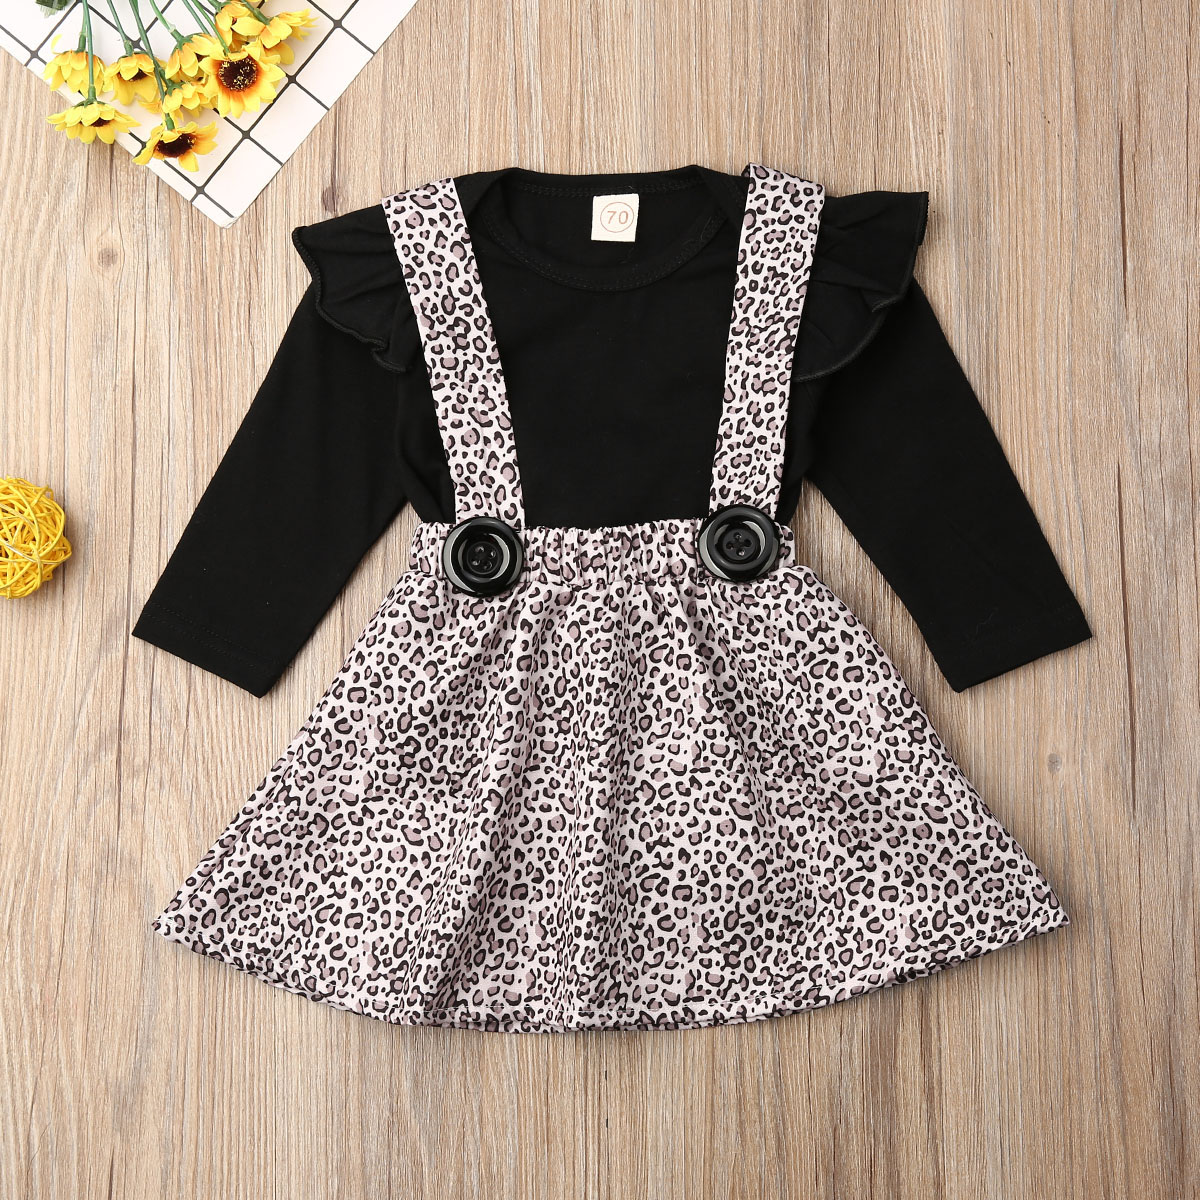 Pudcoco Newborn Baby Girl Clothes Solid Color Fly Sleeve Romper Tops Leopard Print Strap Mini Skirt 2Pcs Outfits Cotton Clothes